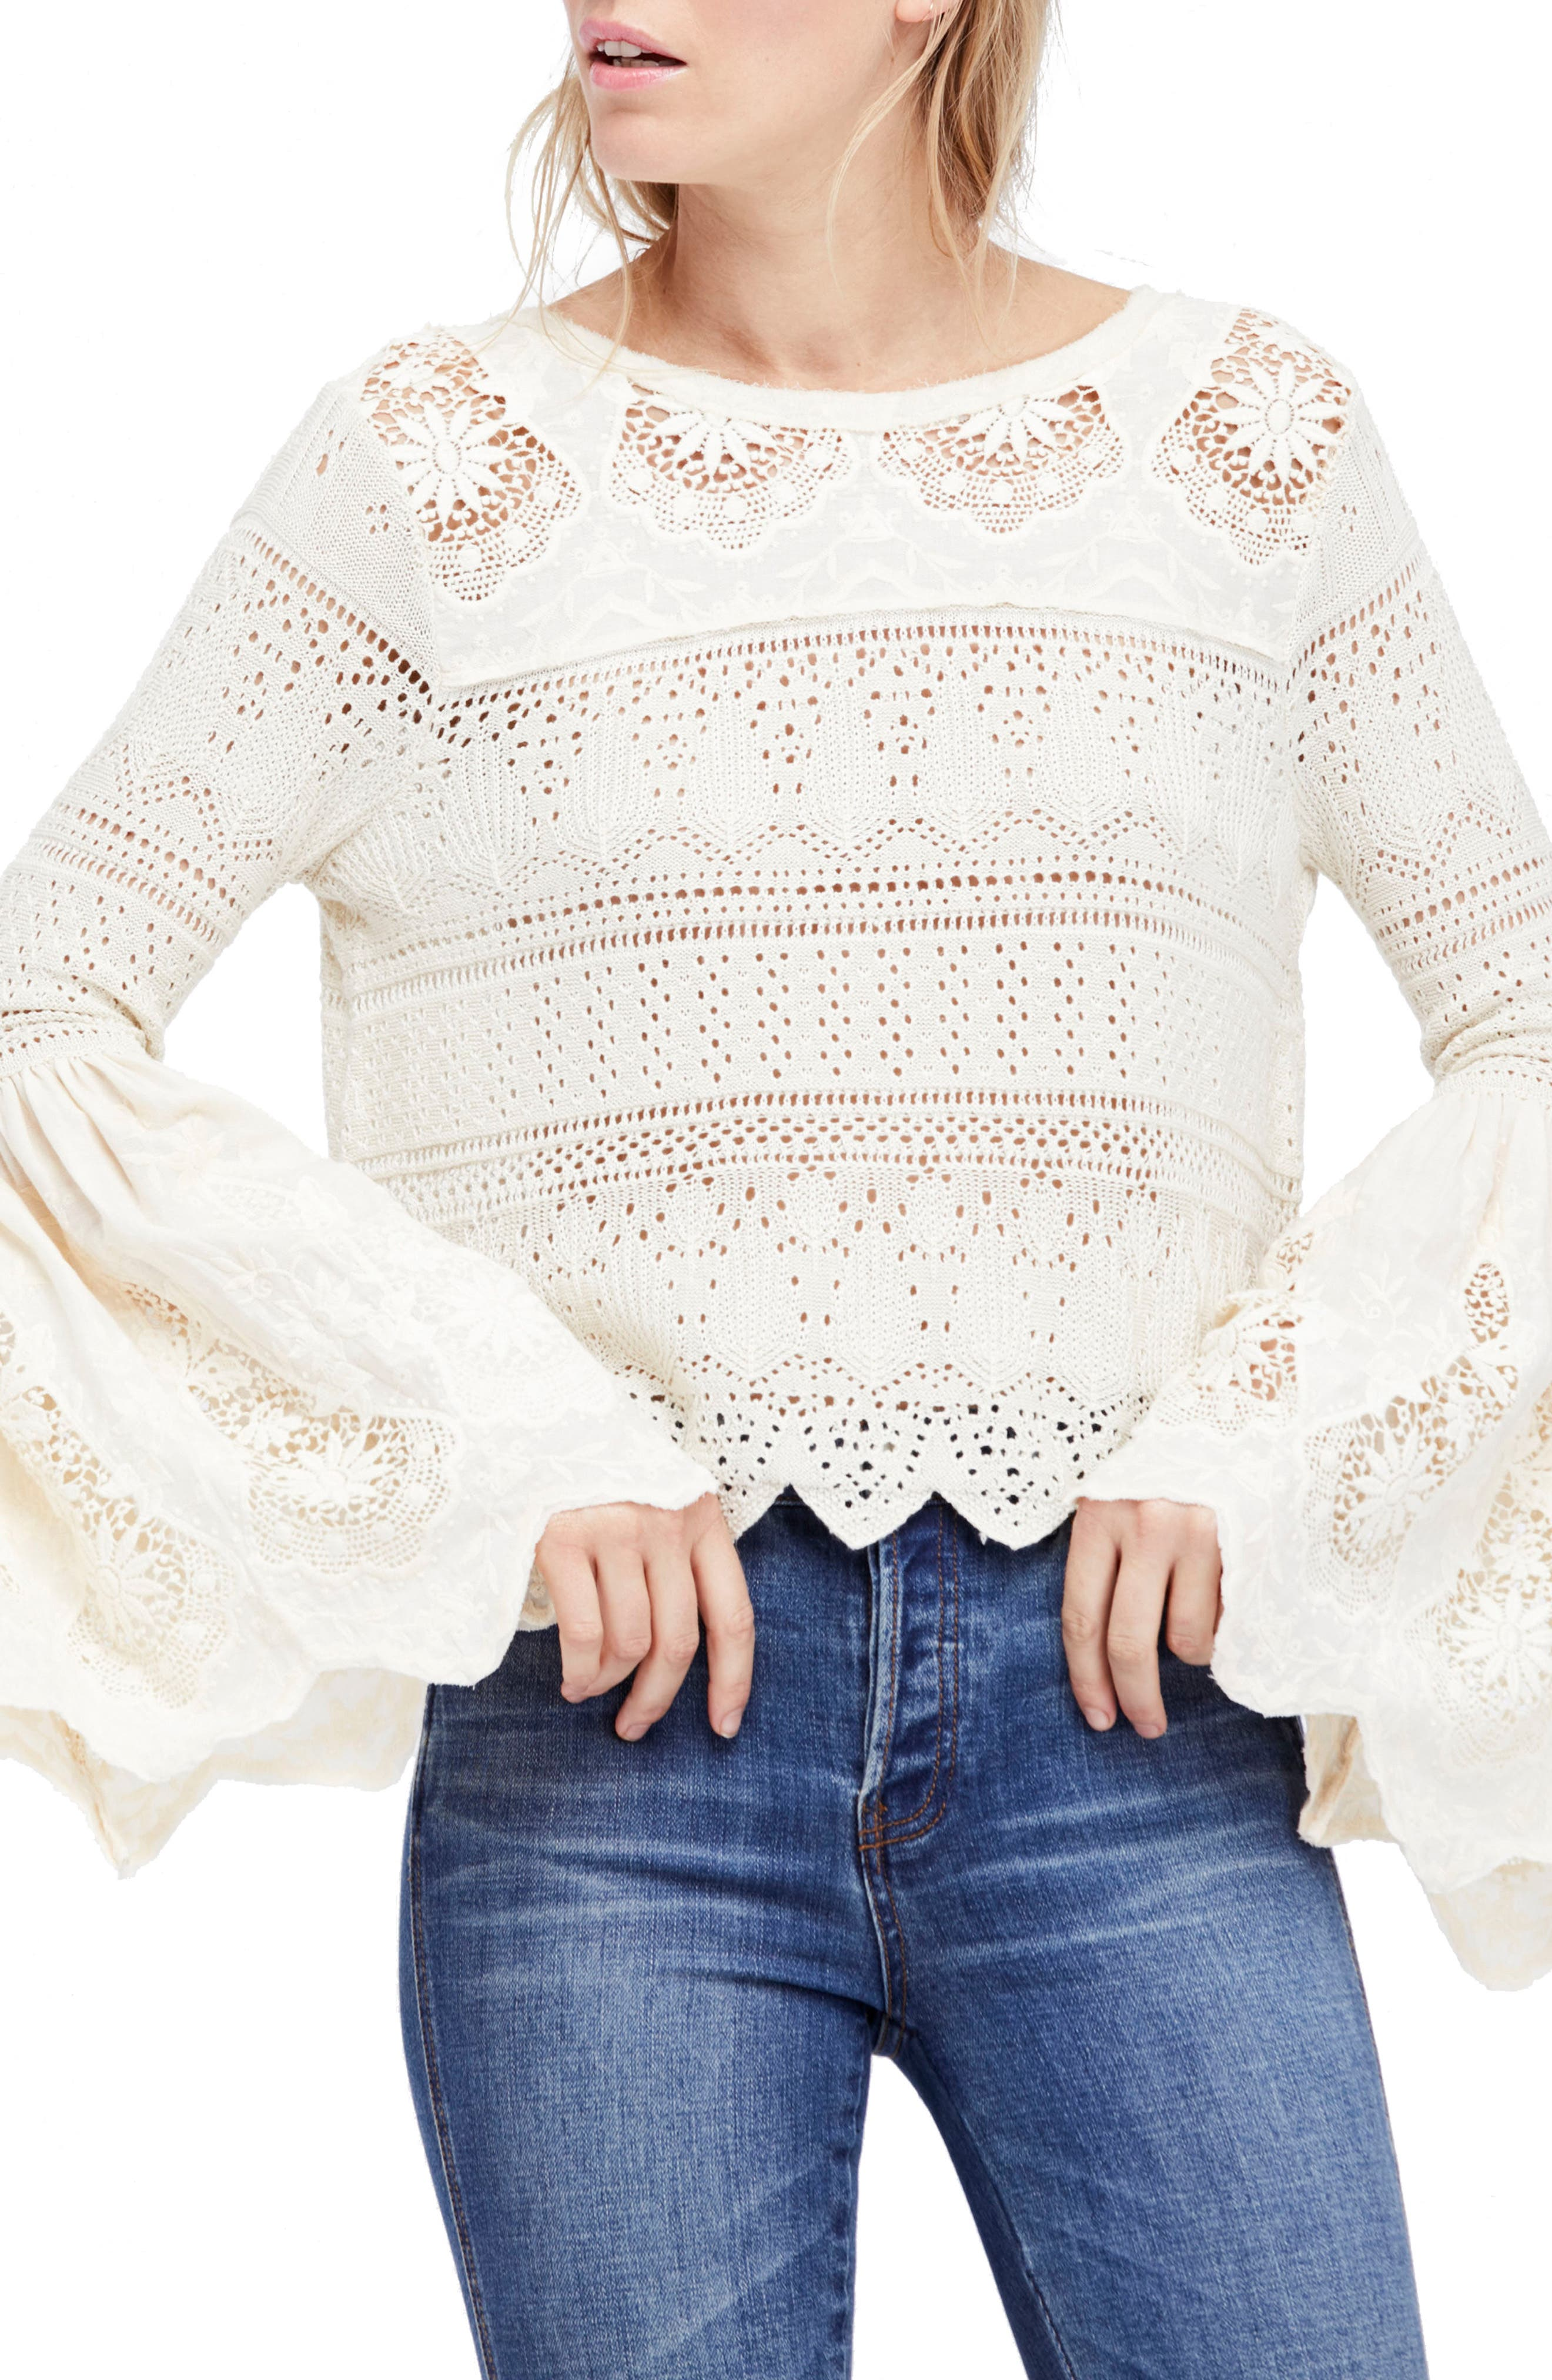 Once Upon a Time Lace Top,                         Main,                         color, Ivory